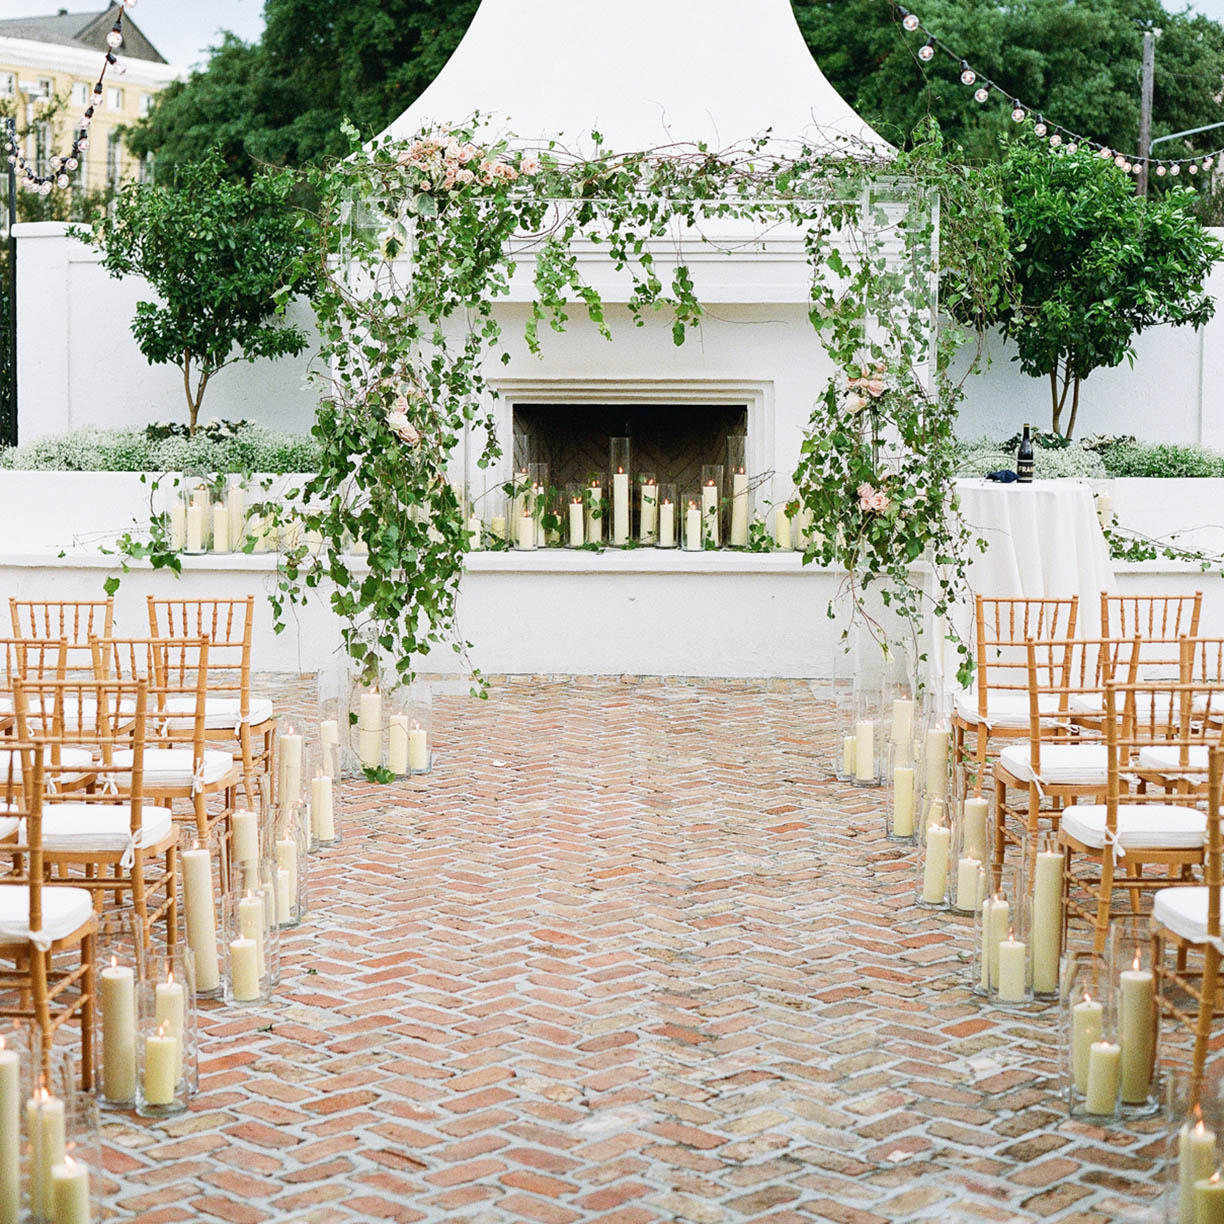 Best venues for a french quarter courtyard wedding new orleans best french quarter courtyards for a wedding junglespirit Choice Image